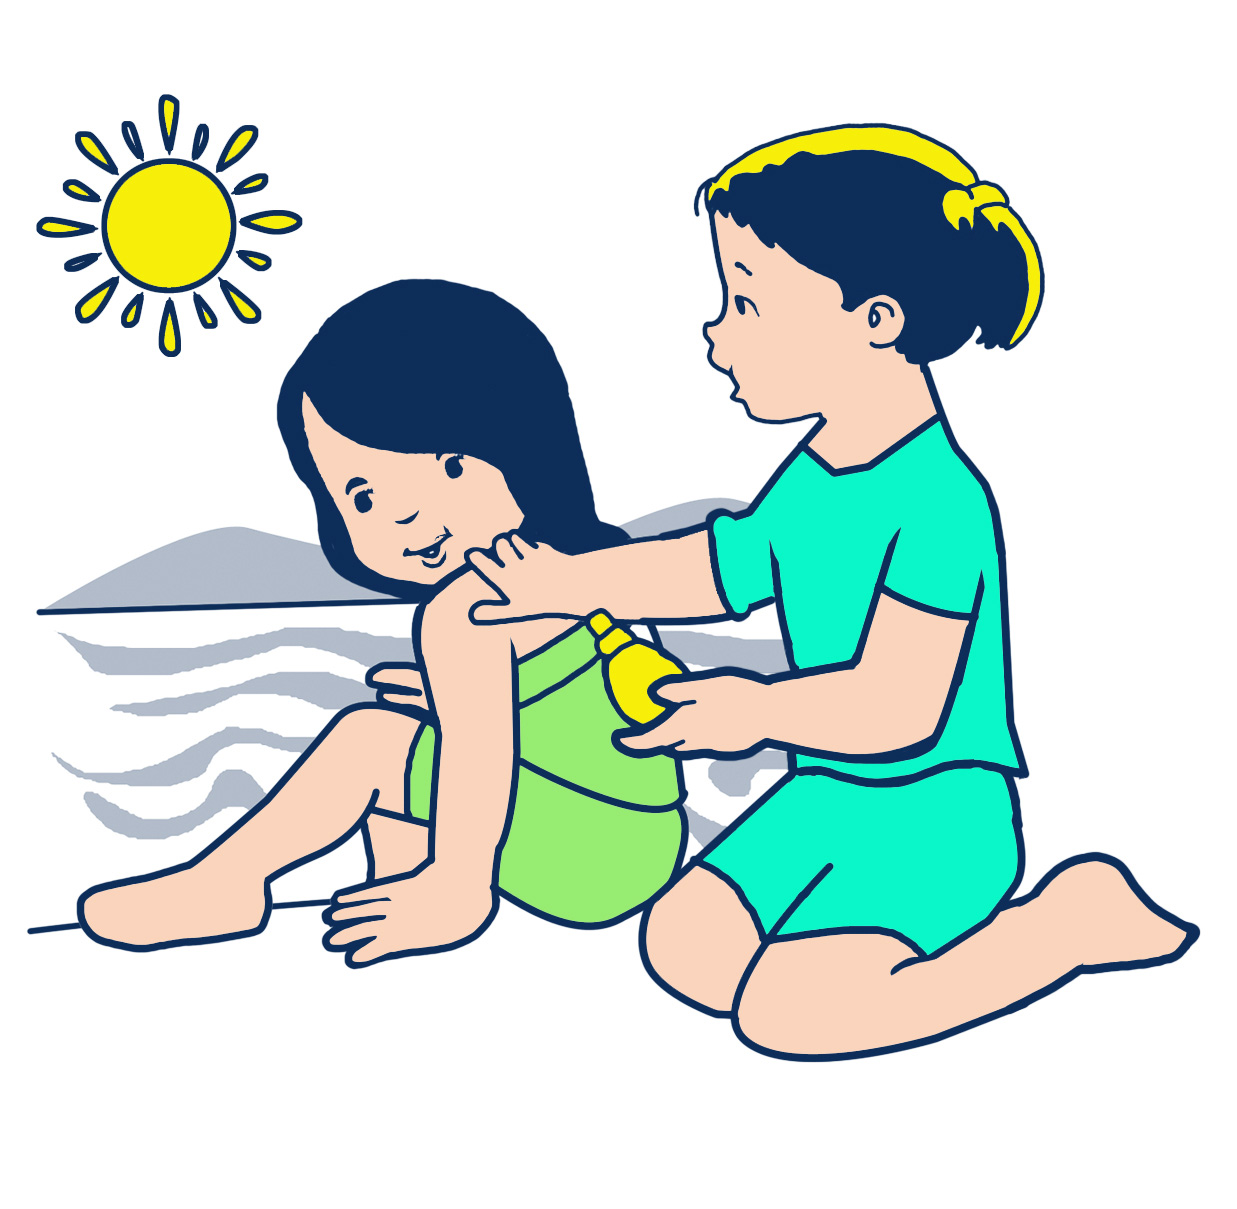 A girl putting sunscreen on so she doesn't burn while at the beach.